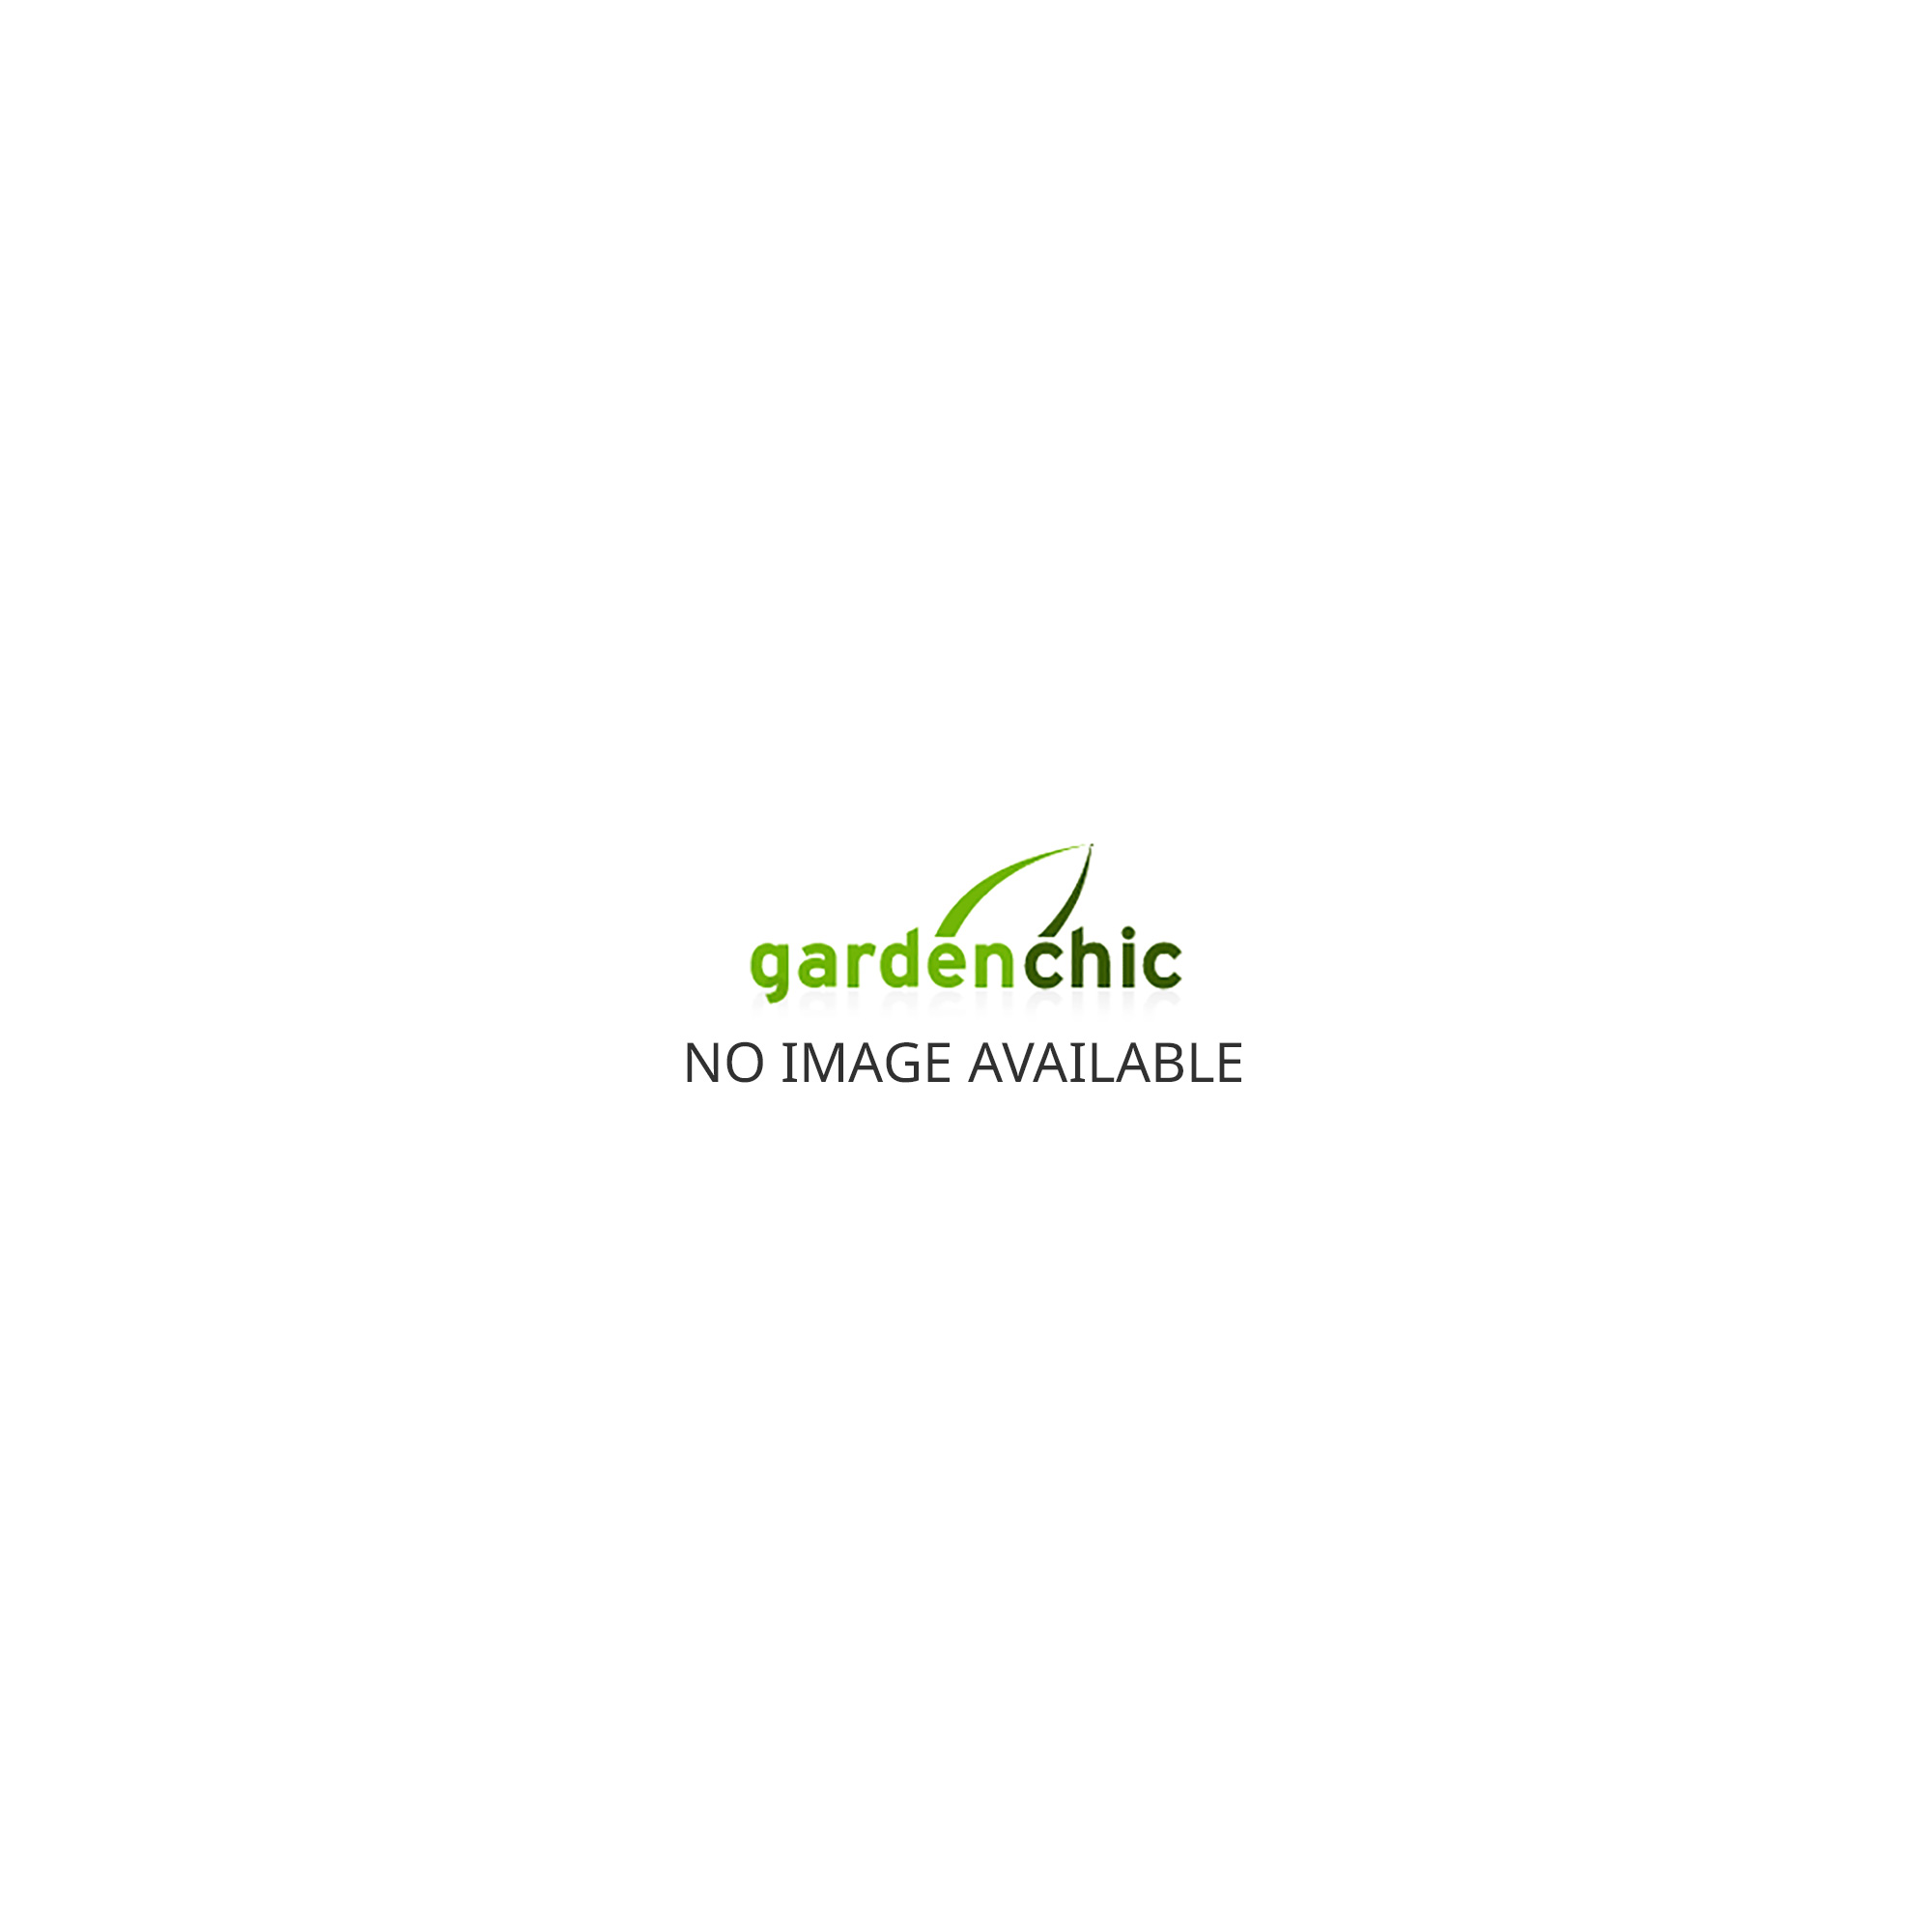 Venus 3800 6ft x 6ft Greenhouse - Green FREE Matching Base until APRIL 2018